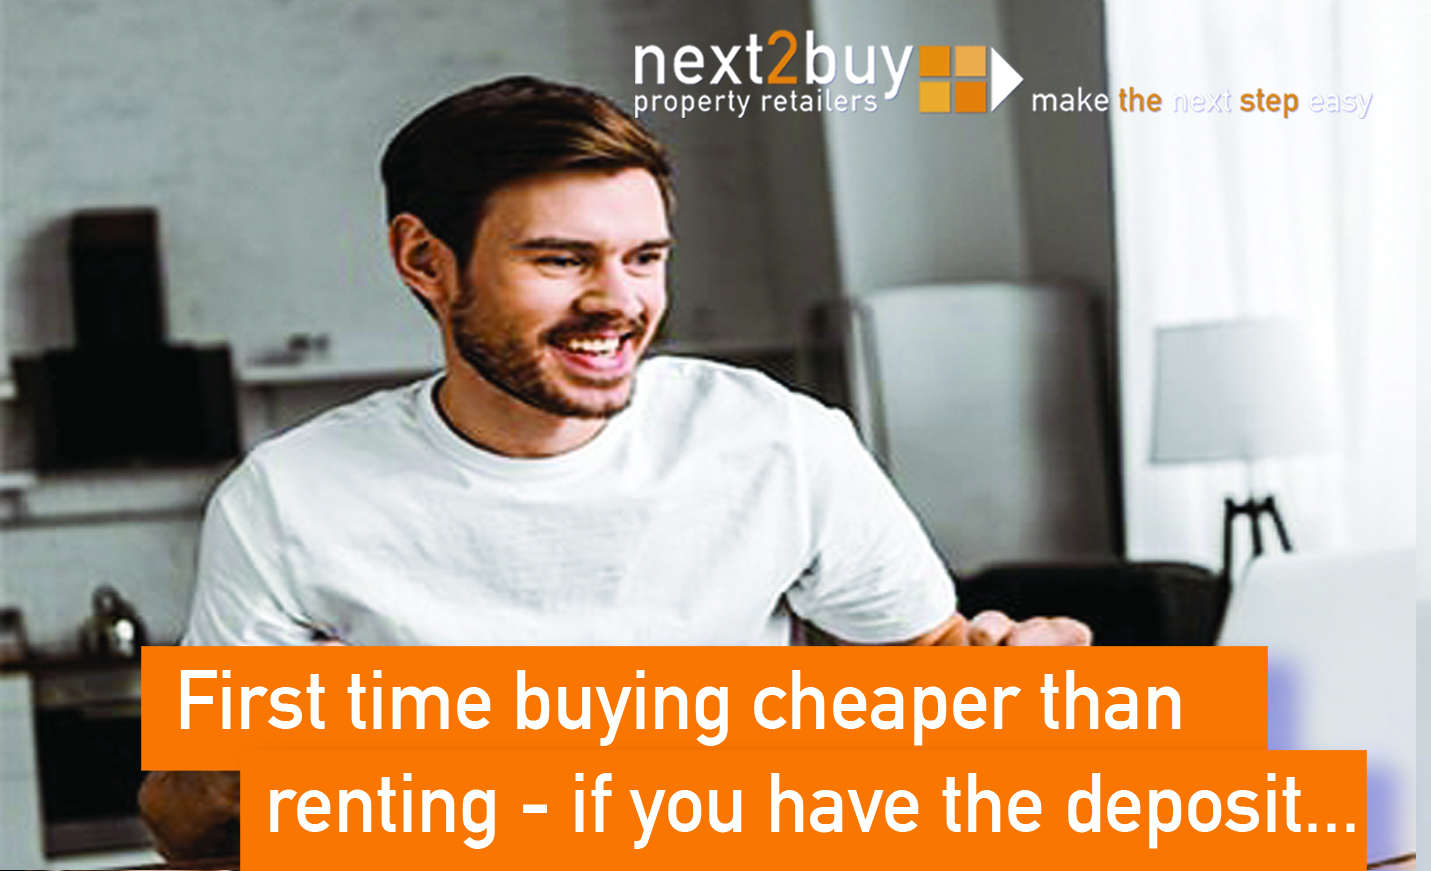 First time buying cheaper than renting - if you have the deposit